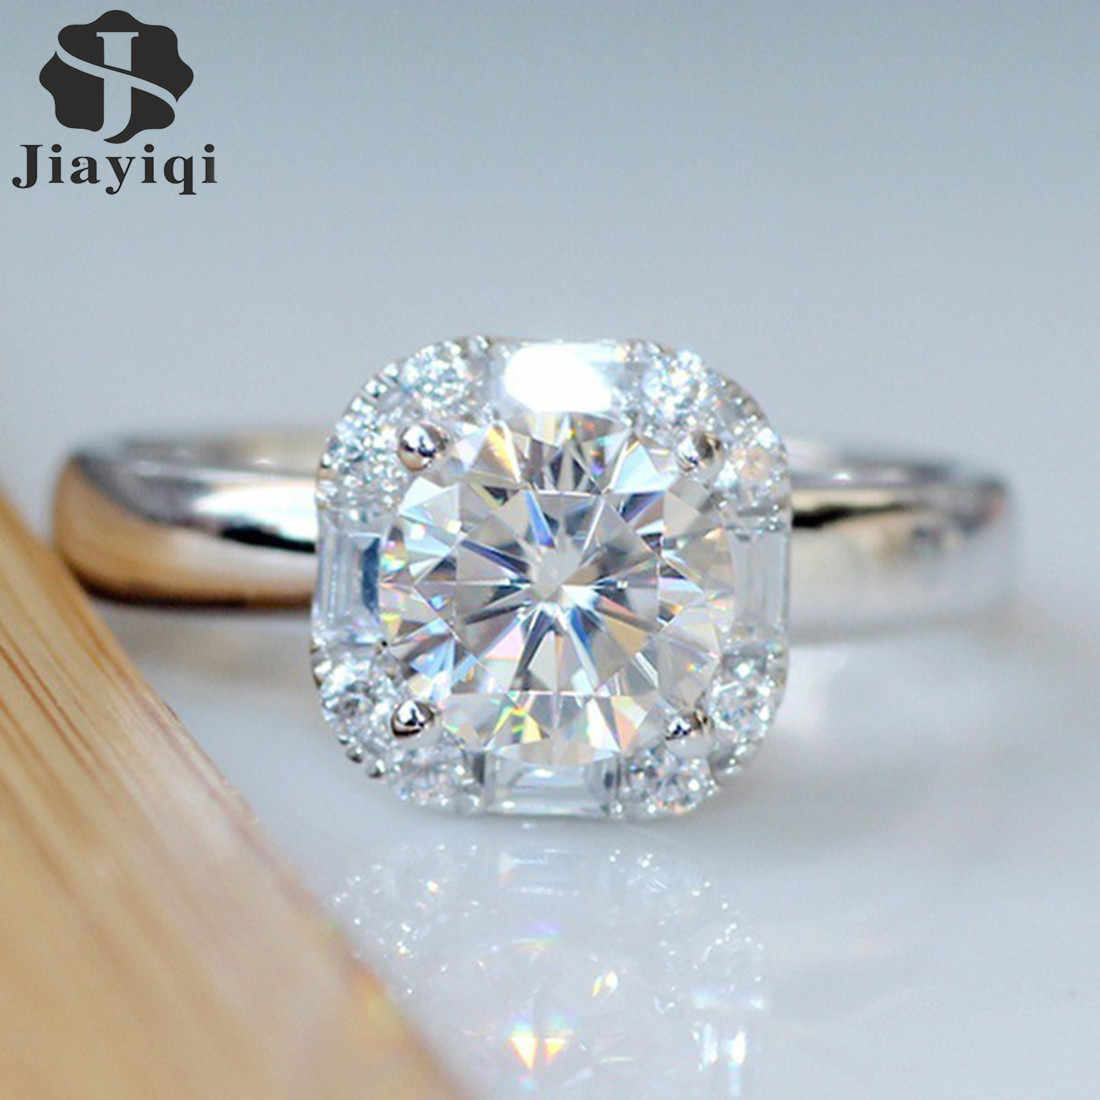 2018 Hot Sale Silver Cubic Simulated Ring Women Round Shiny  Engagement Wedding Ring